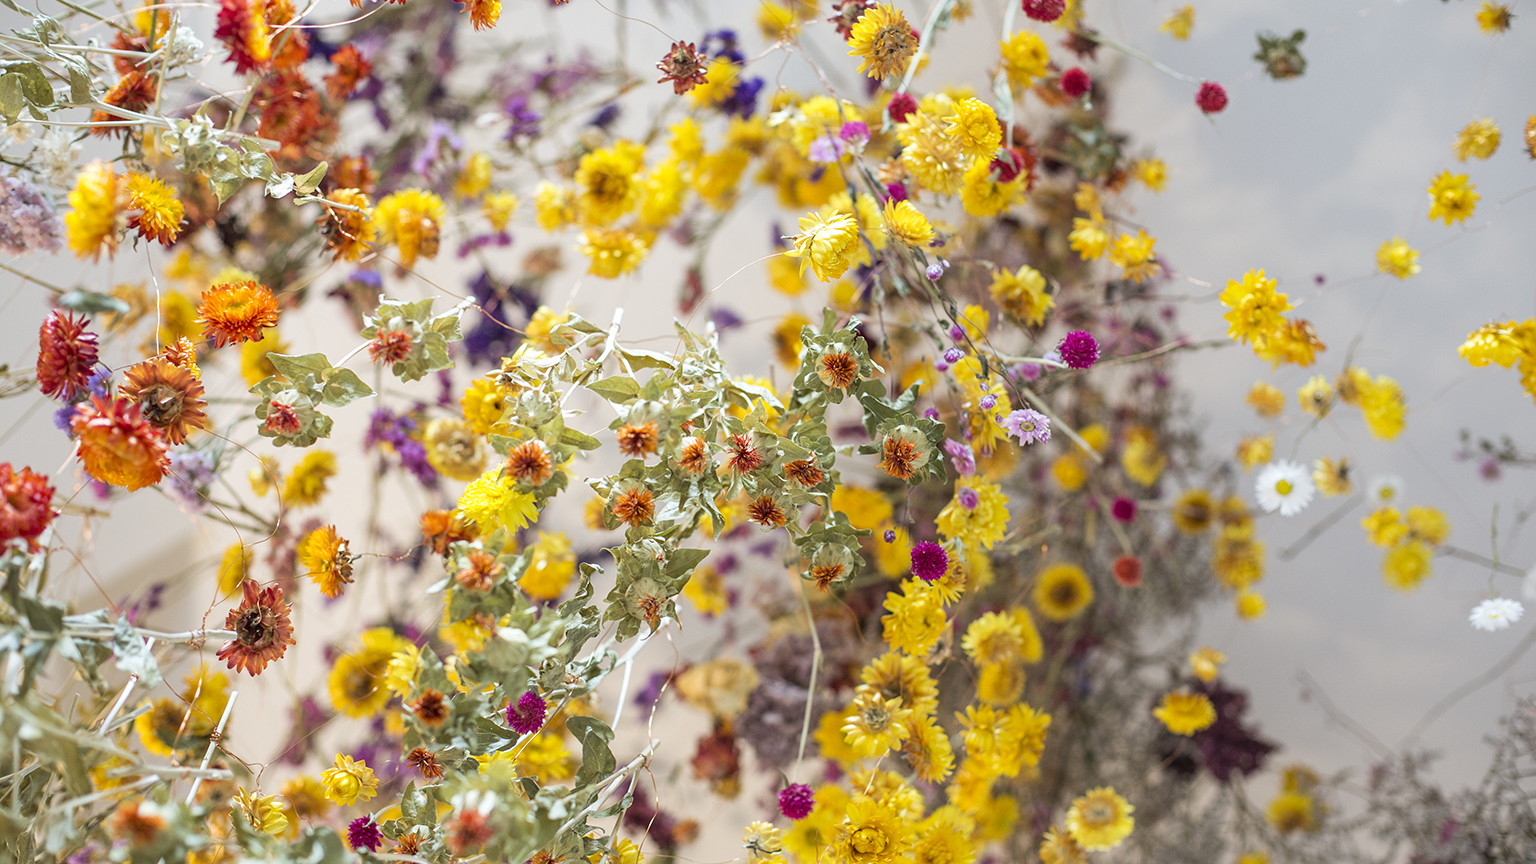 Rebecca Louise Law, The Beauty of Decay, 2016, The Chandran Gallery at Compton Verney